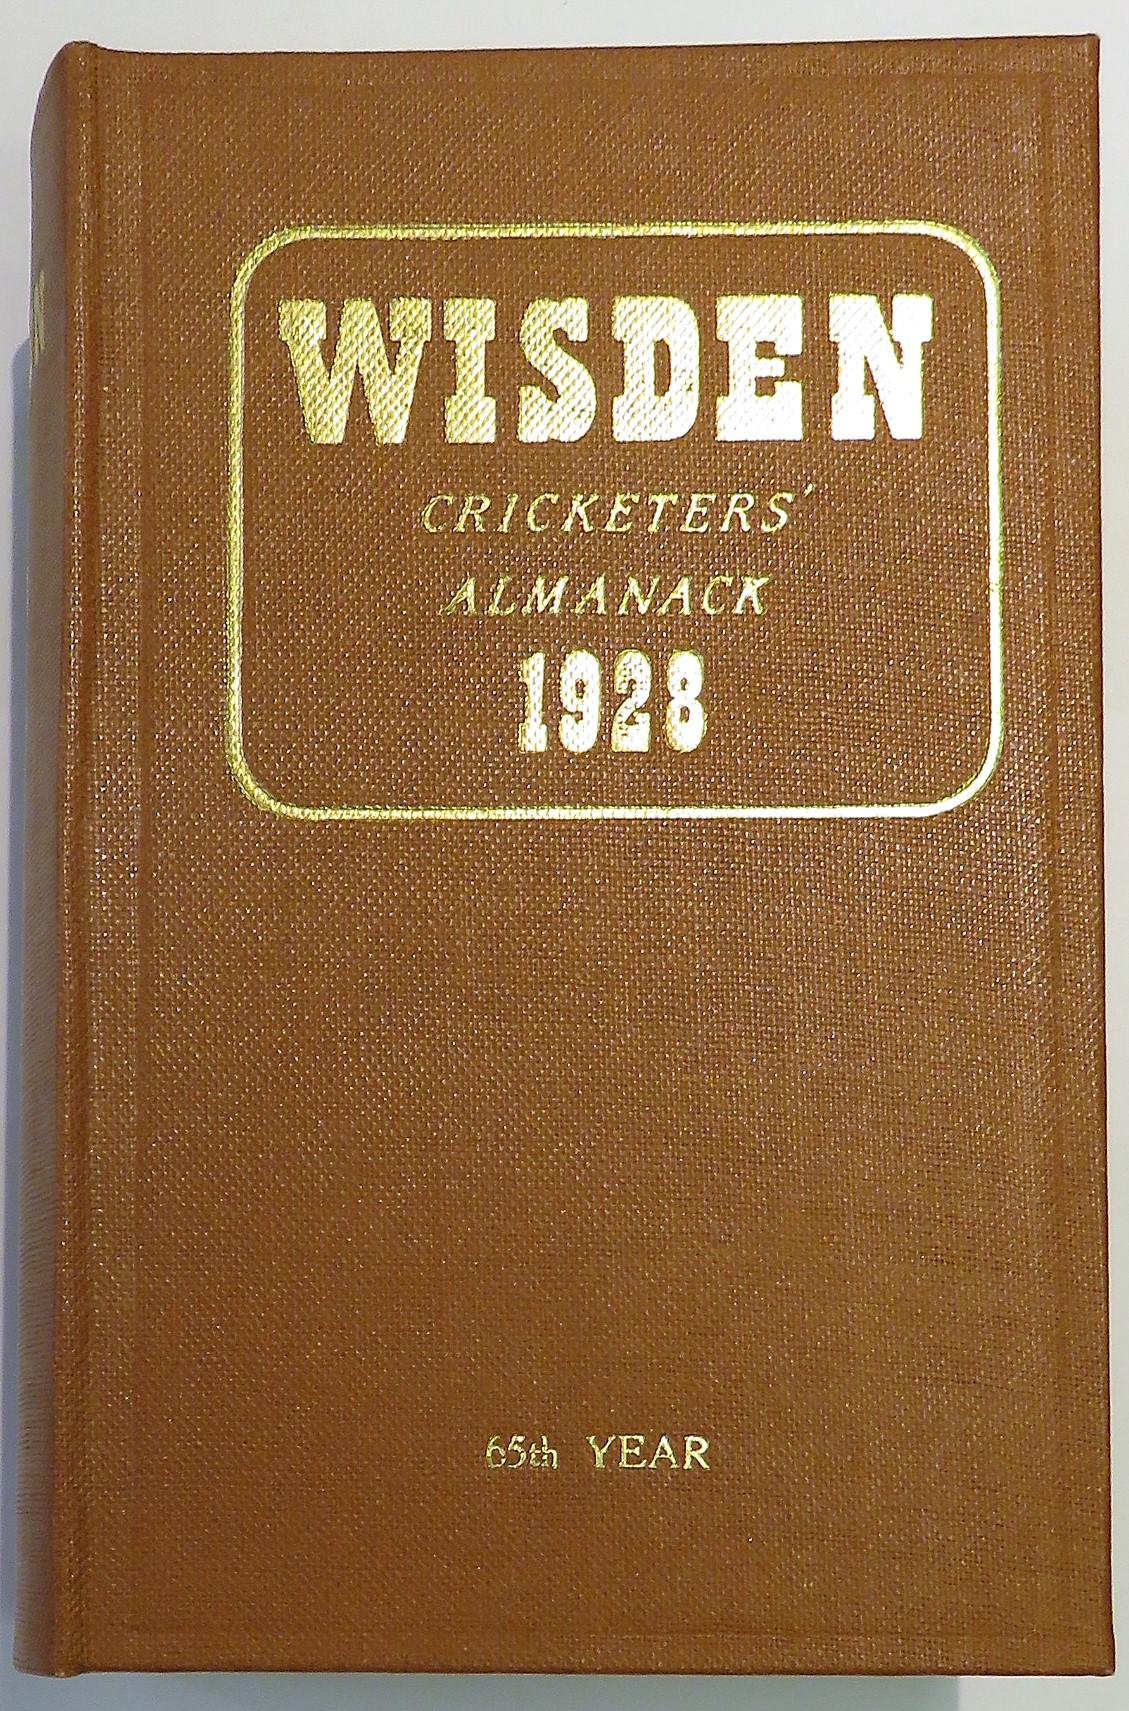 **Wisden Cricketers' Almanack for 1928**